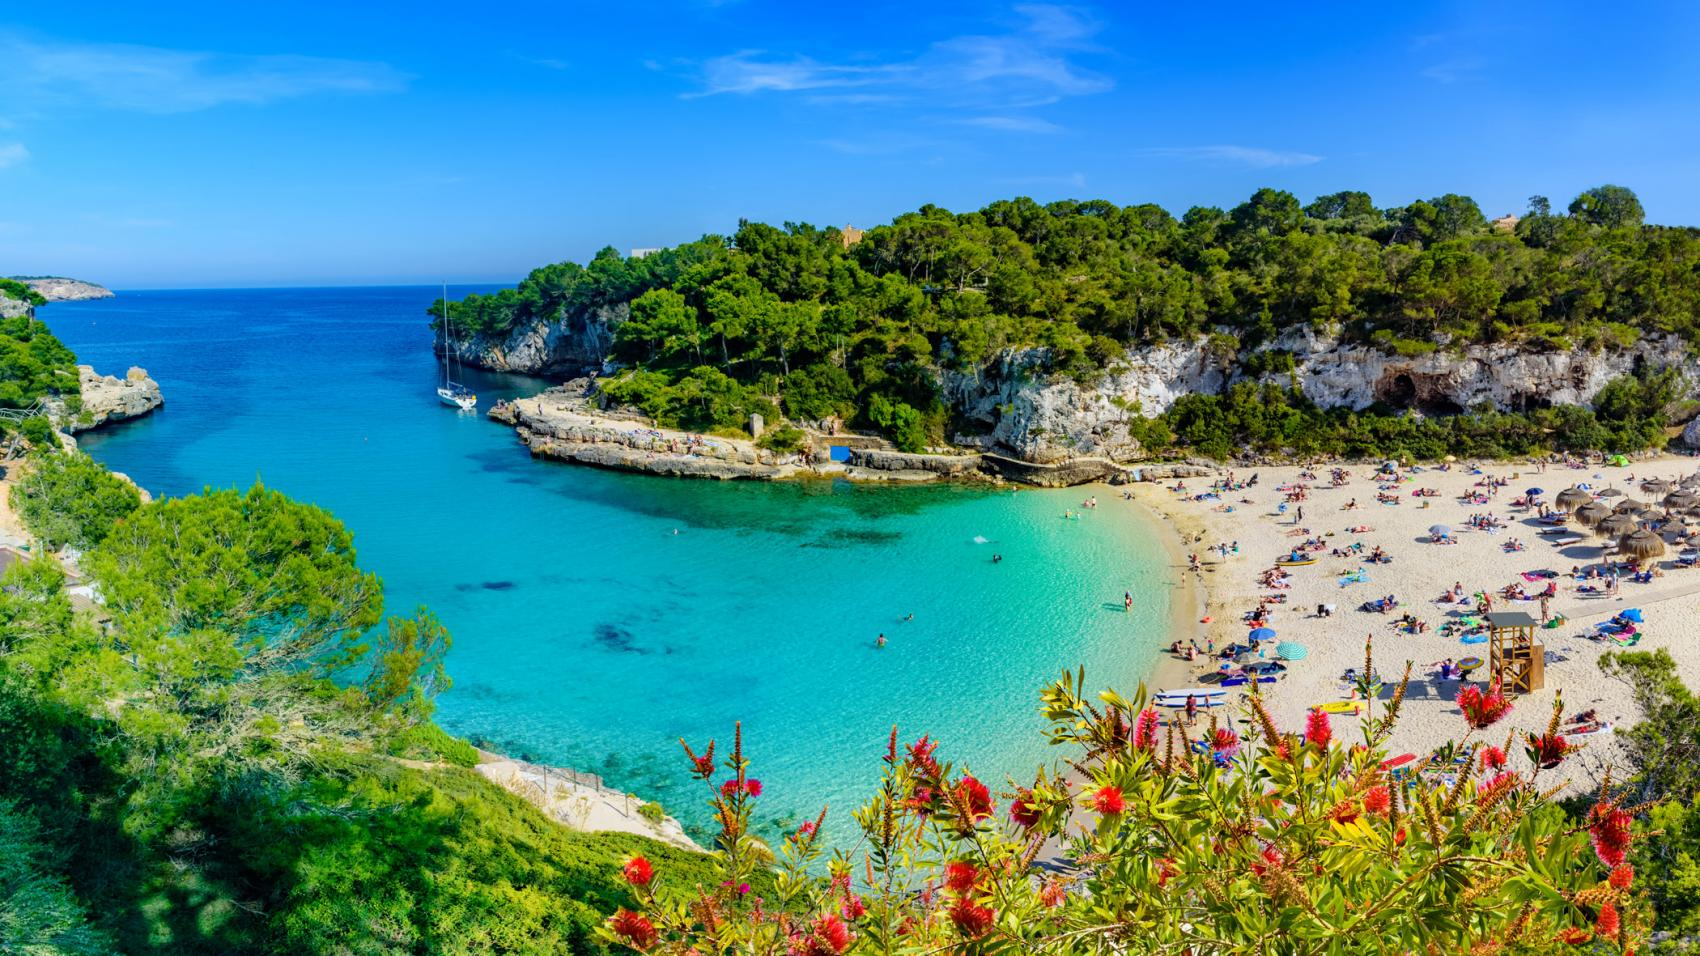 MALLORCA JOINS UNWTO'S NETWORK OF SUSTAINABLE TOURISM OBSERVATORIES